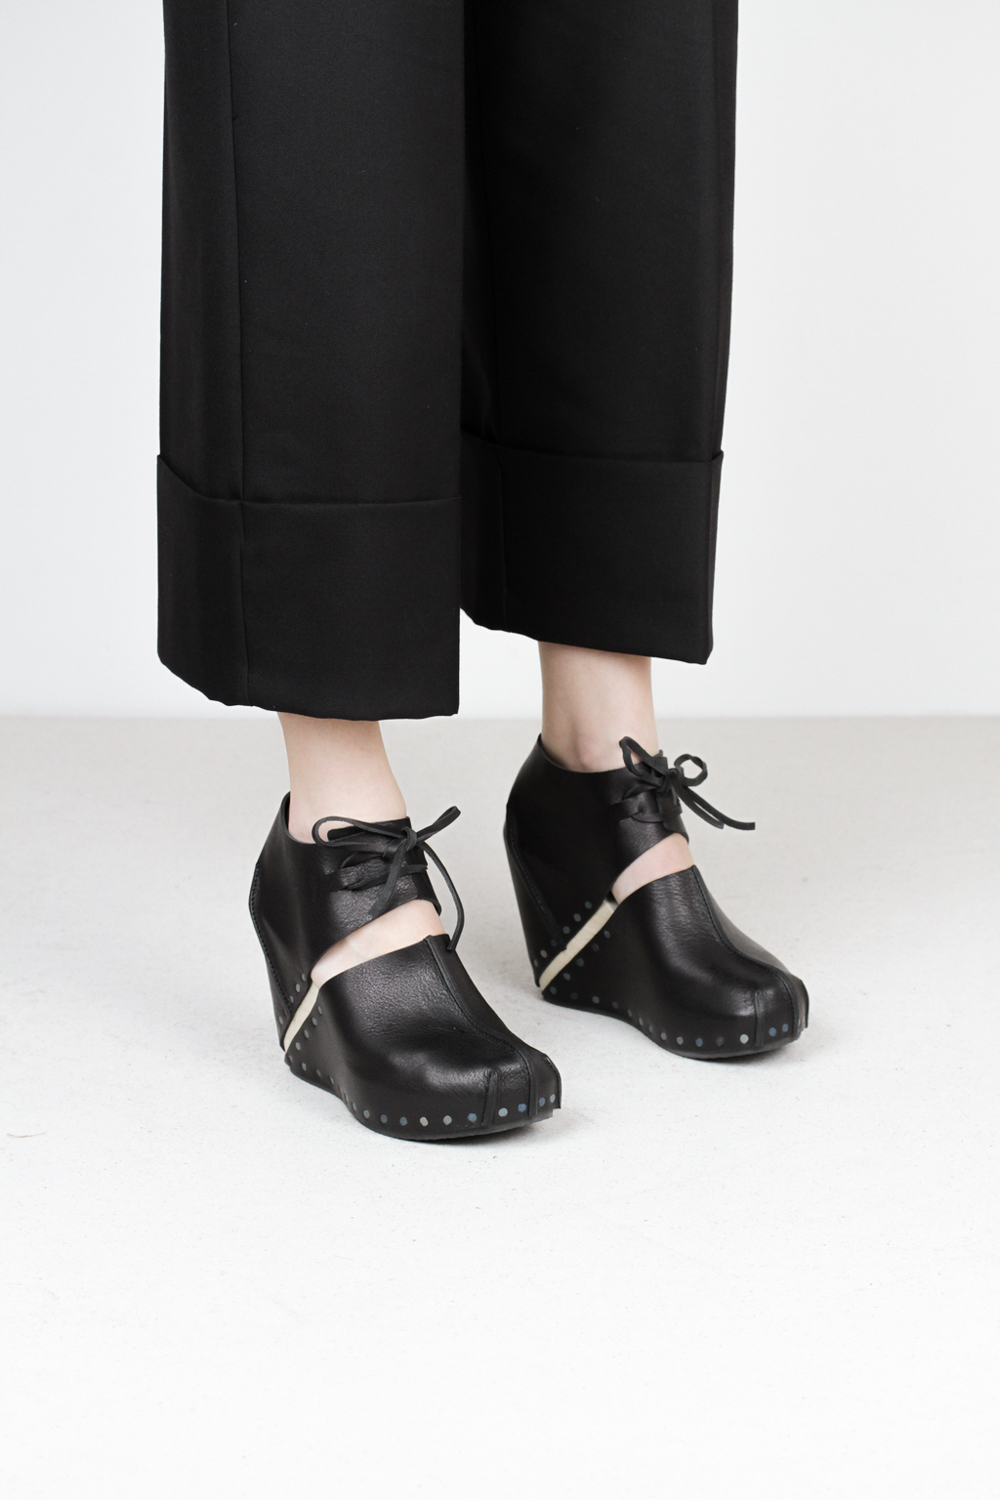 Trippen liva f waw blk wooden shoes